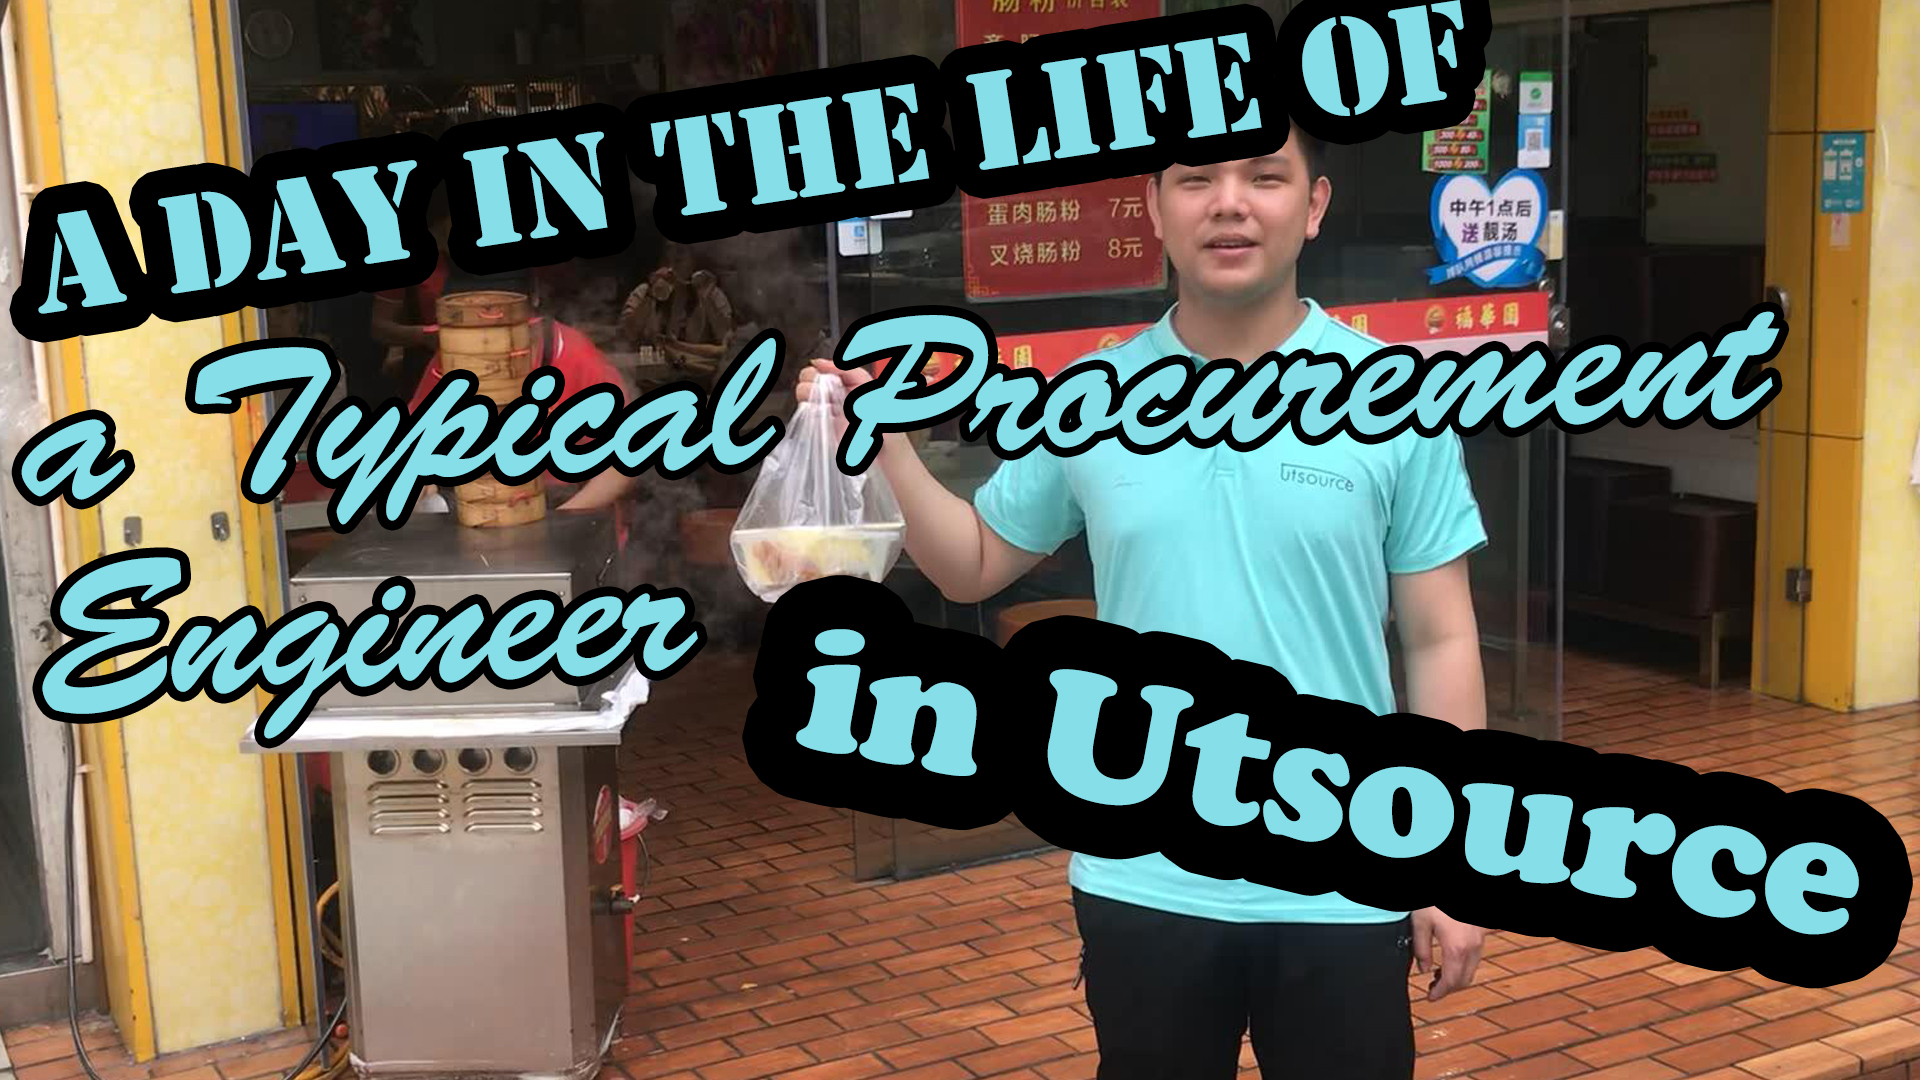 A Day in the Life of a Procurement Engineer in Utsource